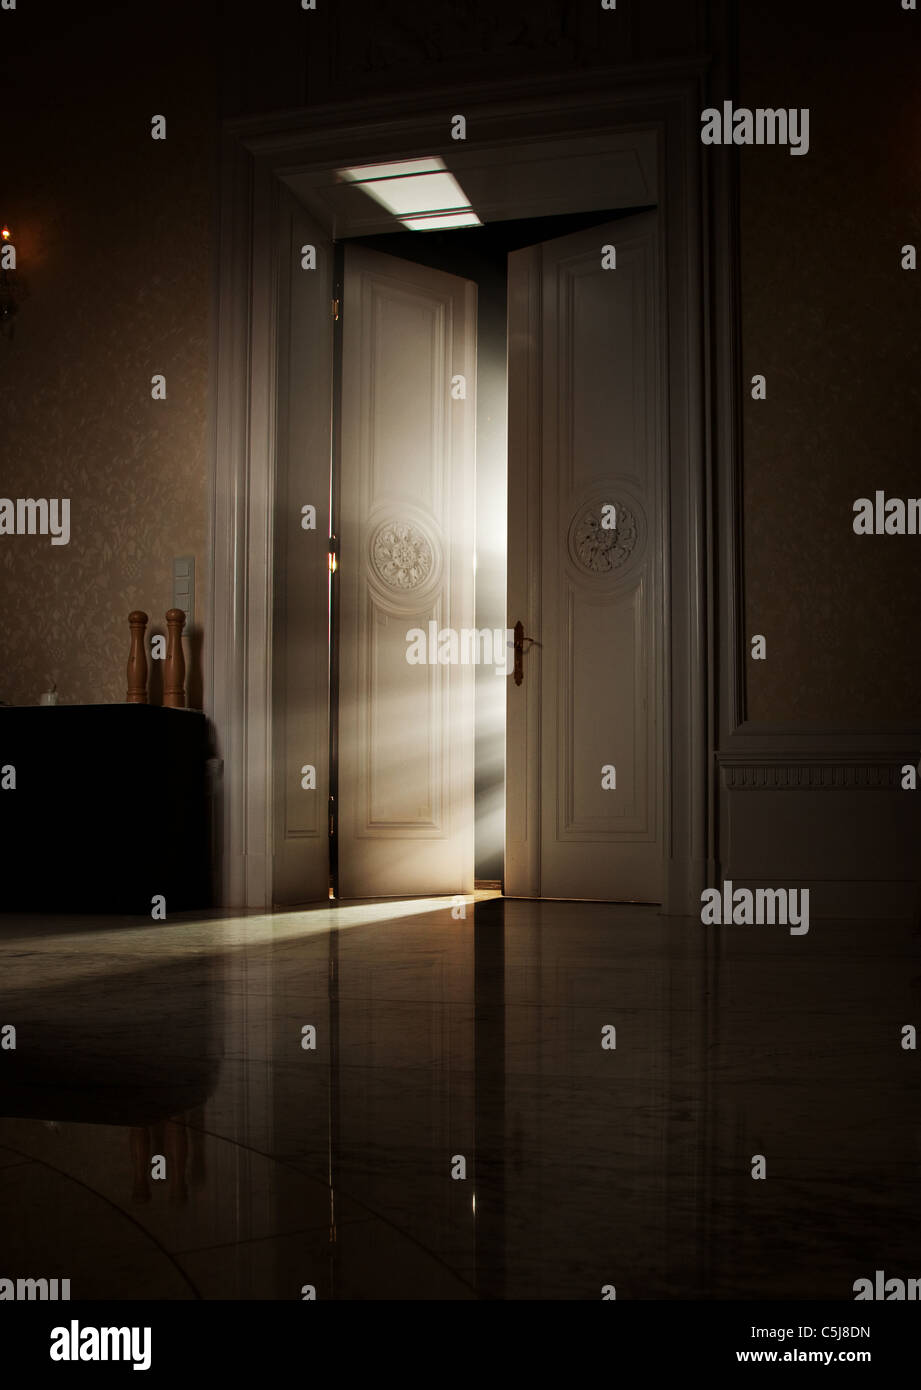 Mysterious rays of light behind door - Stock Image